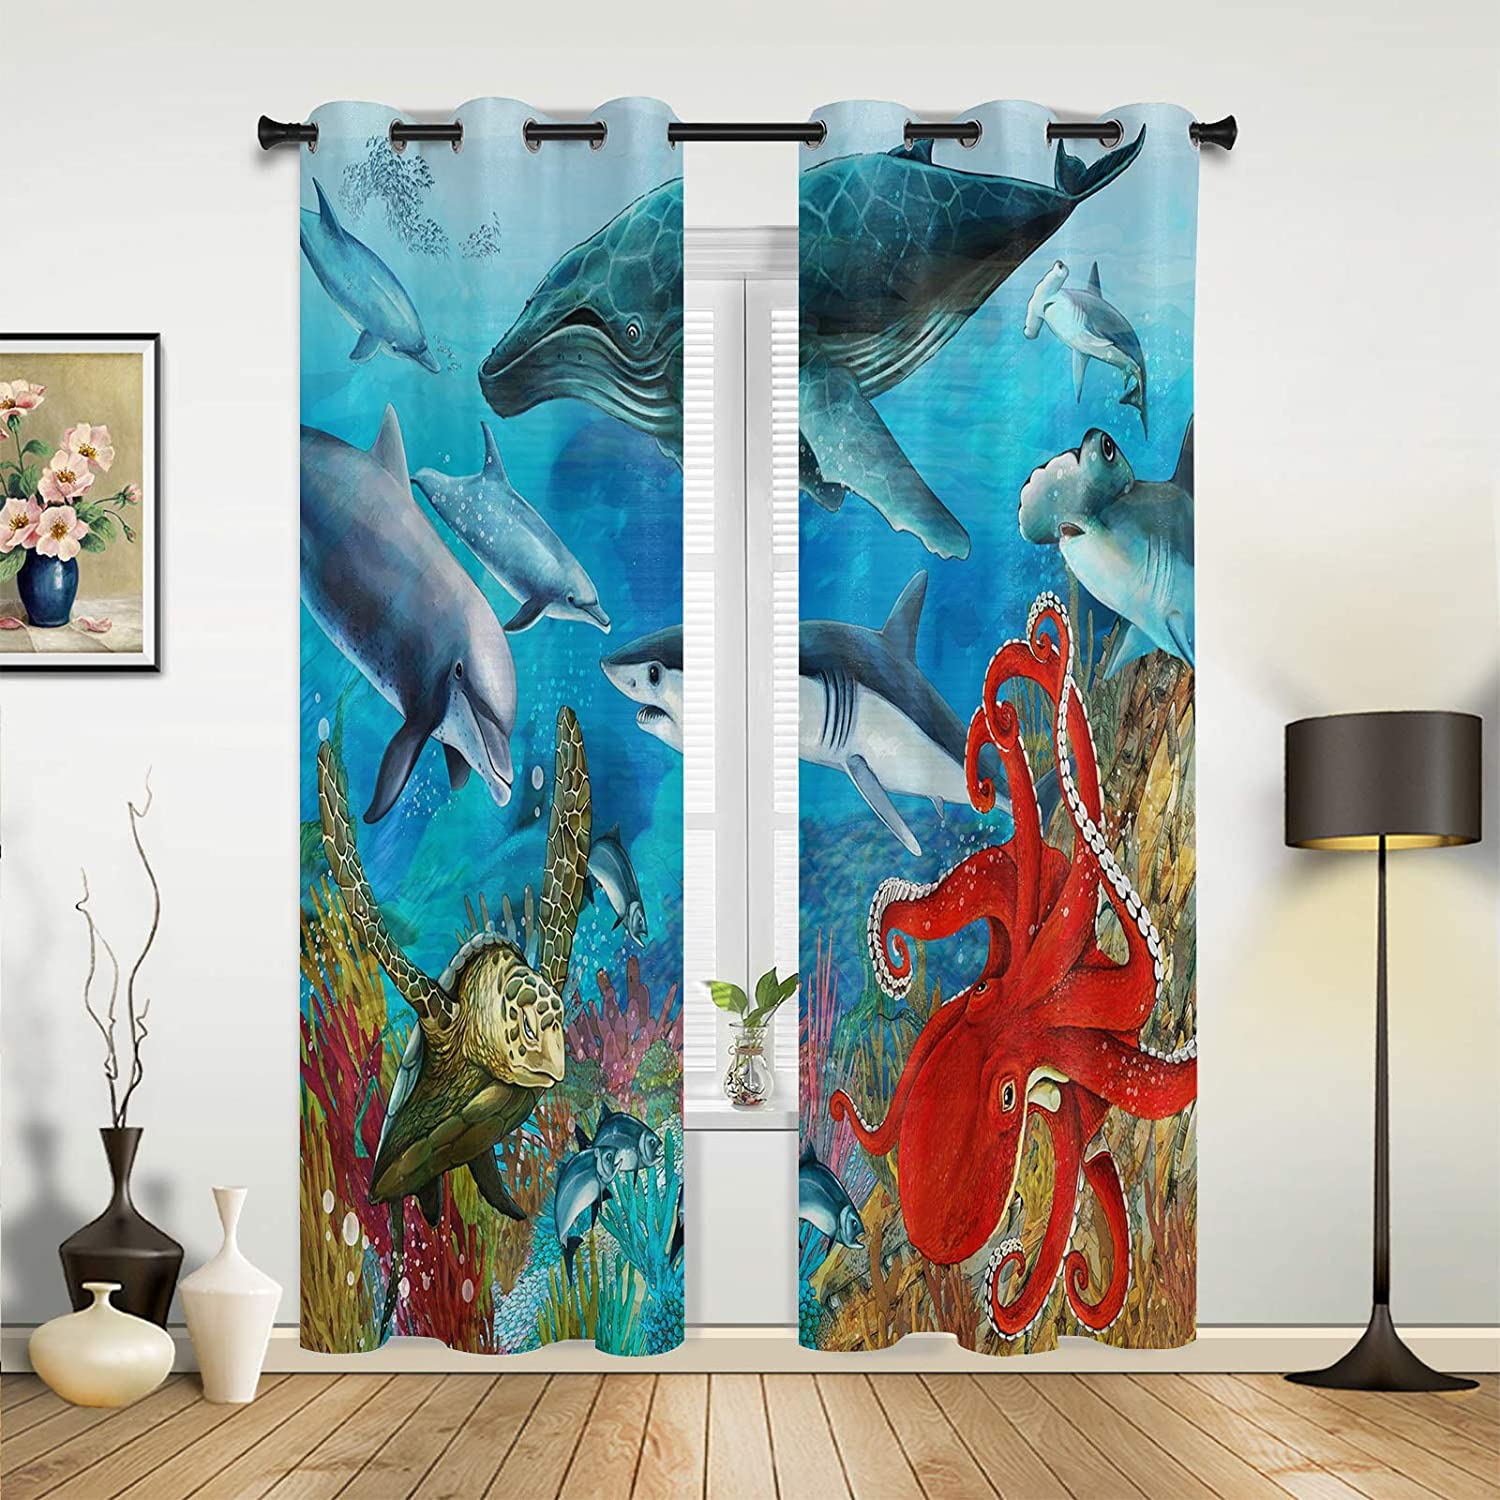 Window Curtains Drapes Max 78% OFF Panels Ocean Max 71% OFF Underwater Dream World Scary